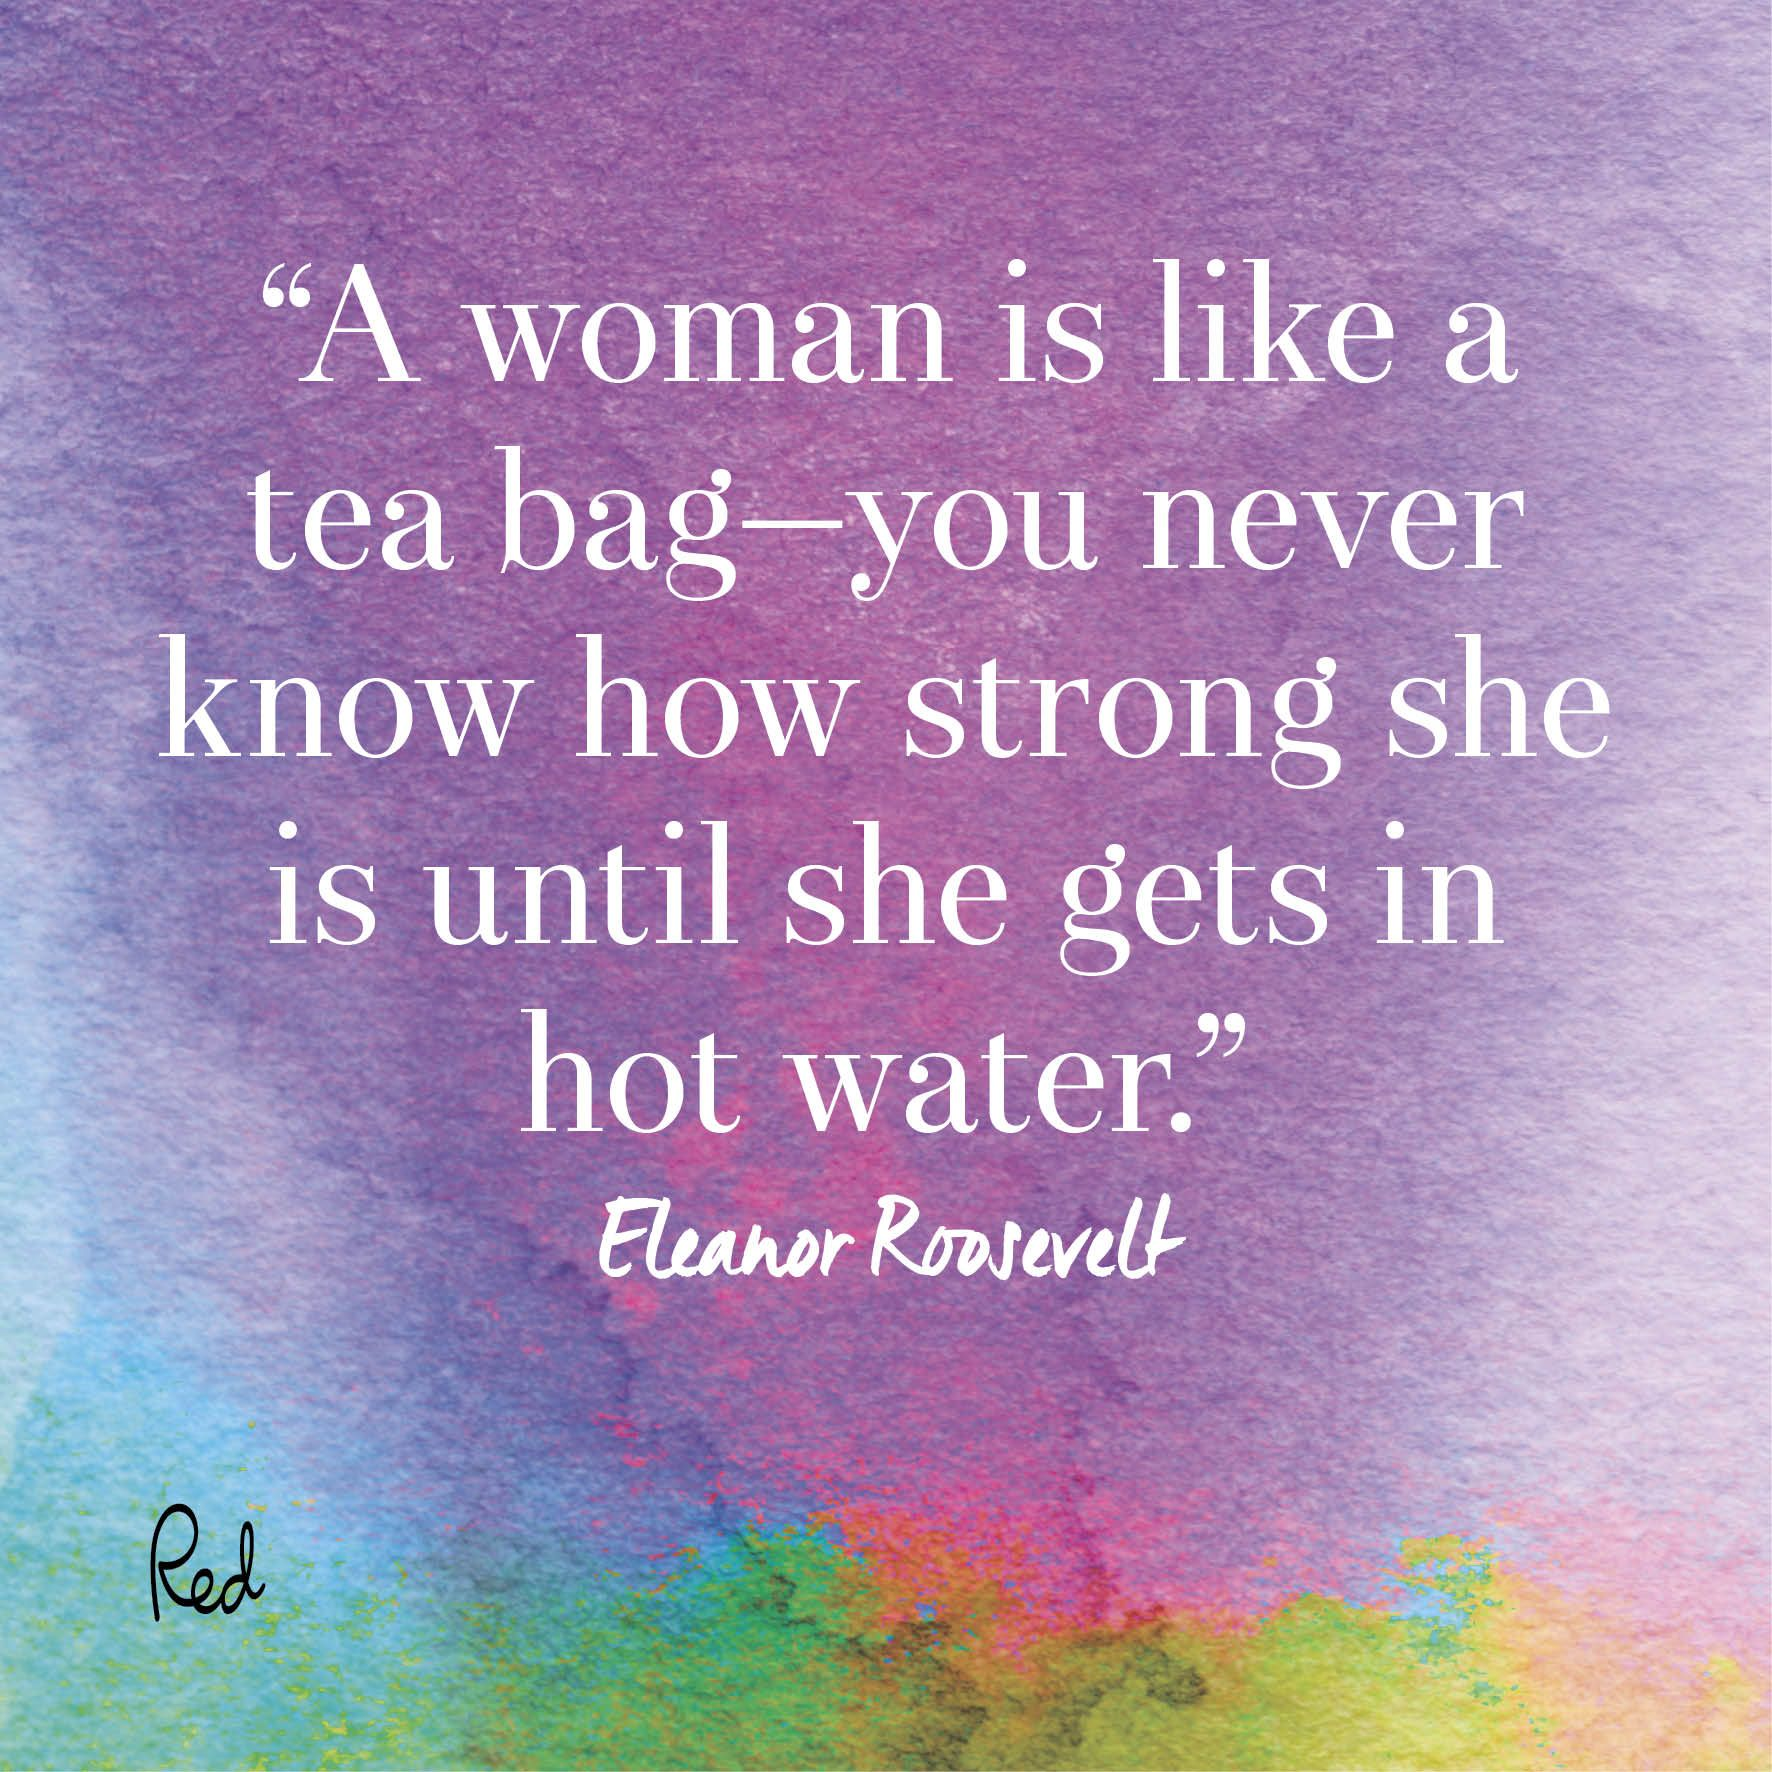 Encouraging Words For Women's Day Facebook – VisitQuotes